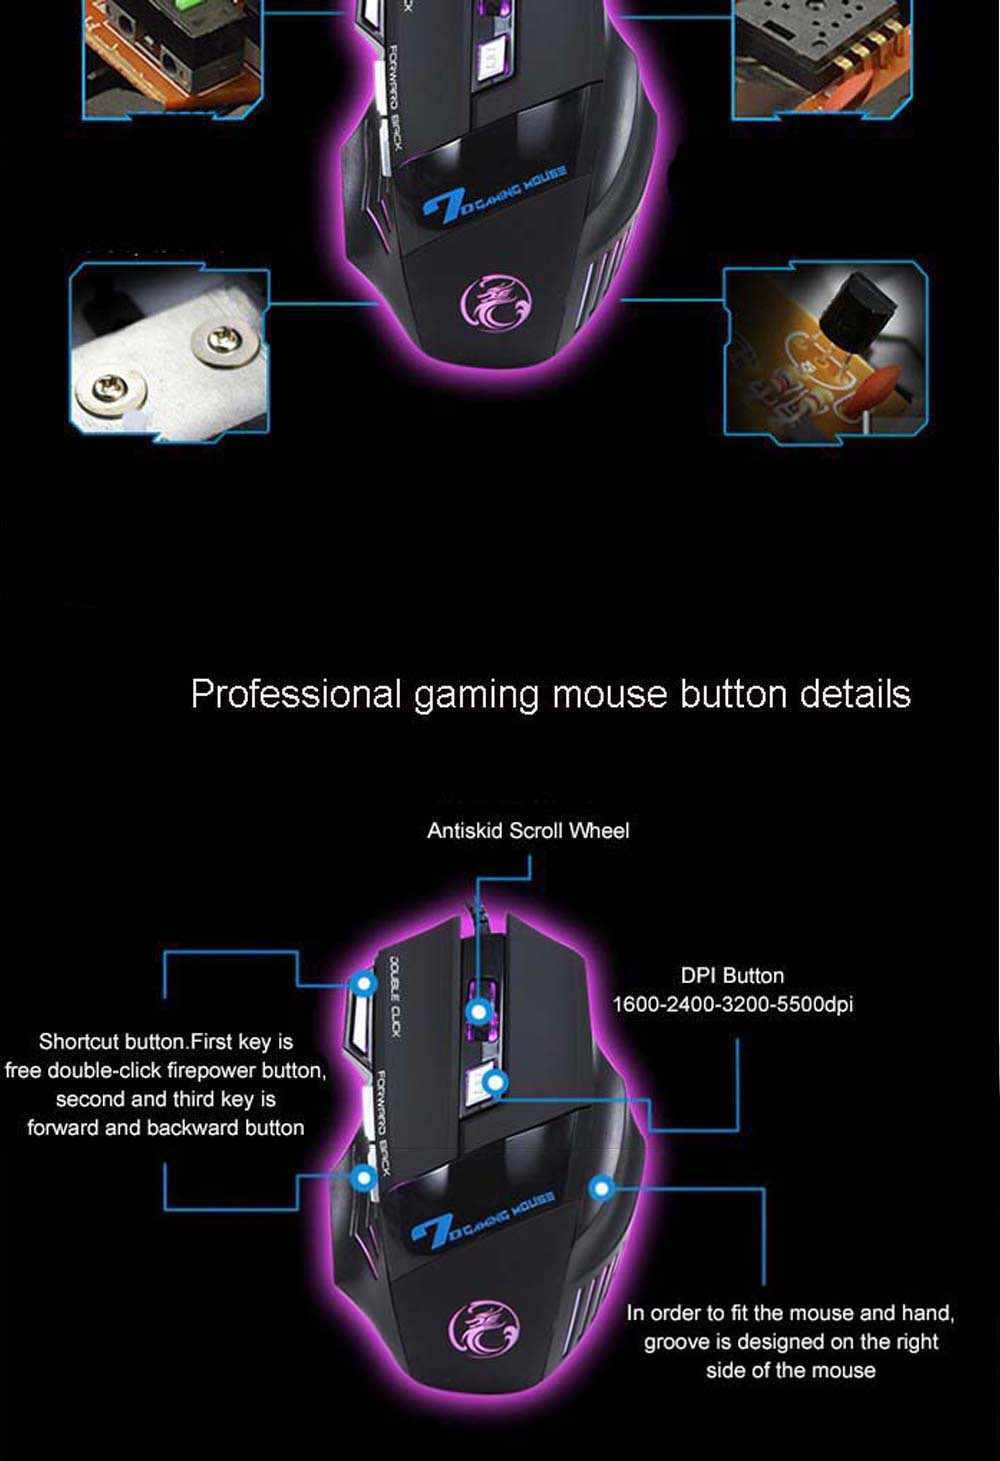 Canleen Stereo Bass Gaming Headphone that are Noise Canceling Canleen Stereo Bass Gaming Headphone that are Noise Canceling HTB1xBJCKVXXXXcrXVXXq6xXFXXXb